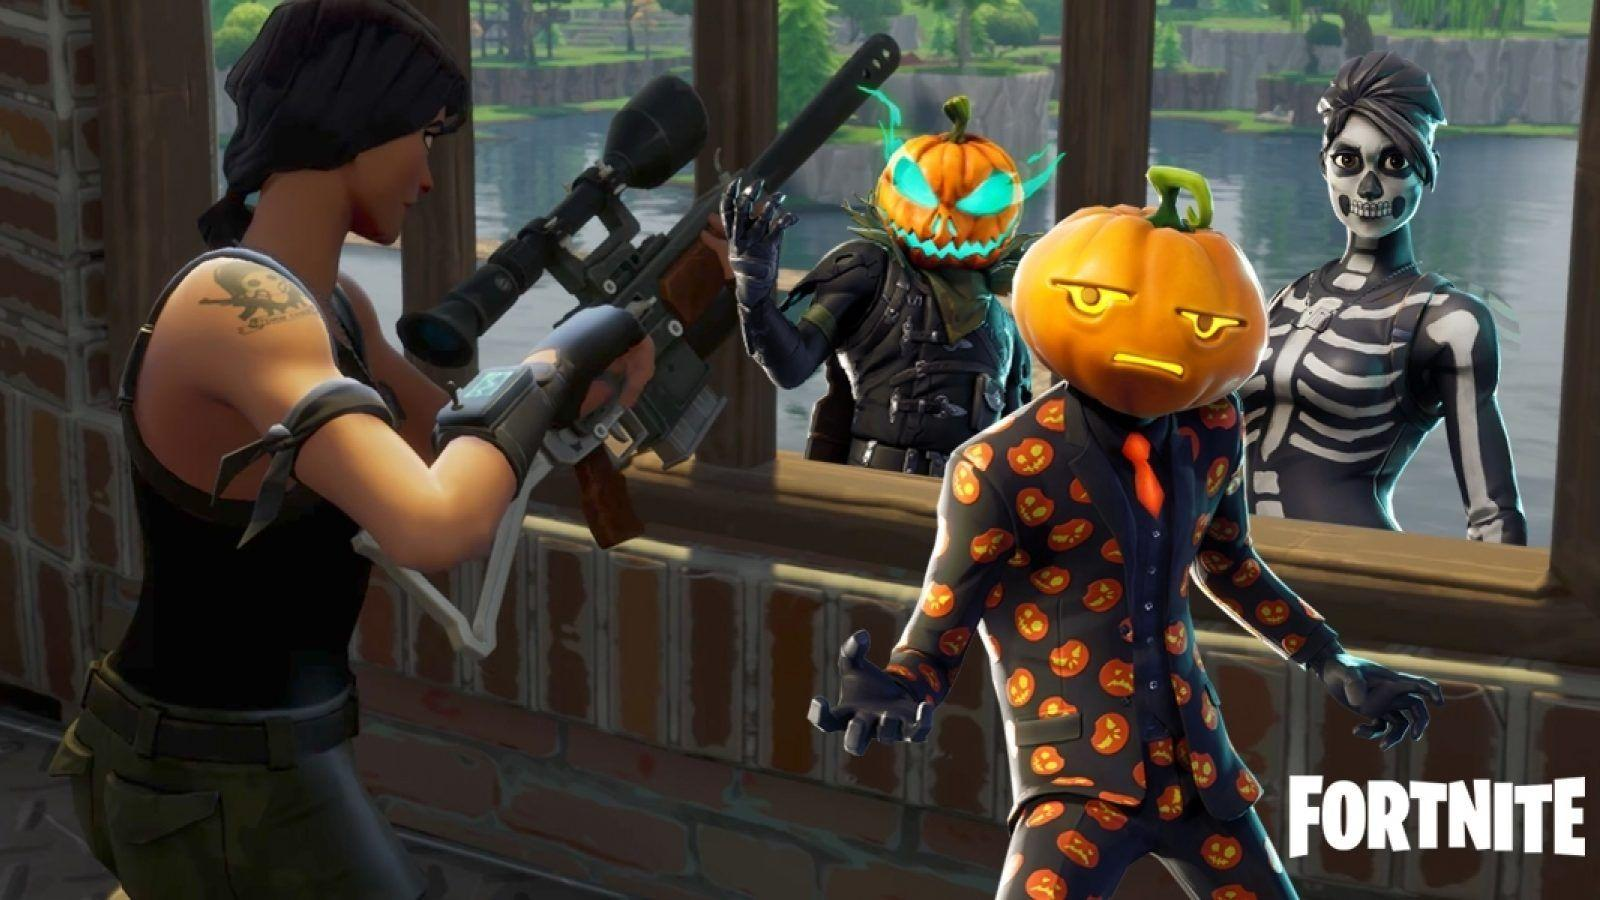 Names and rarities of leaked skins and cosmetics found in Fortnite's ...